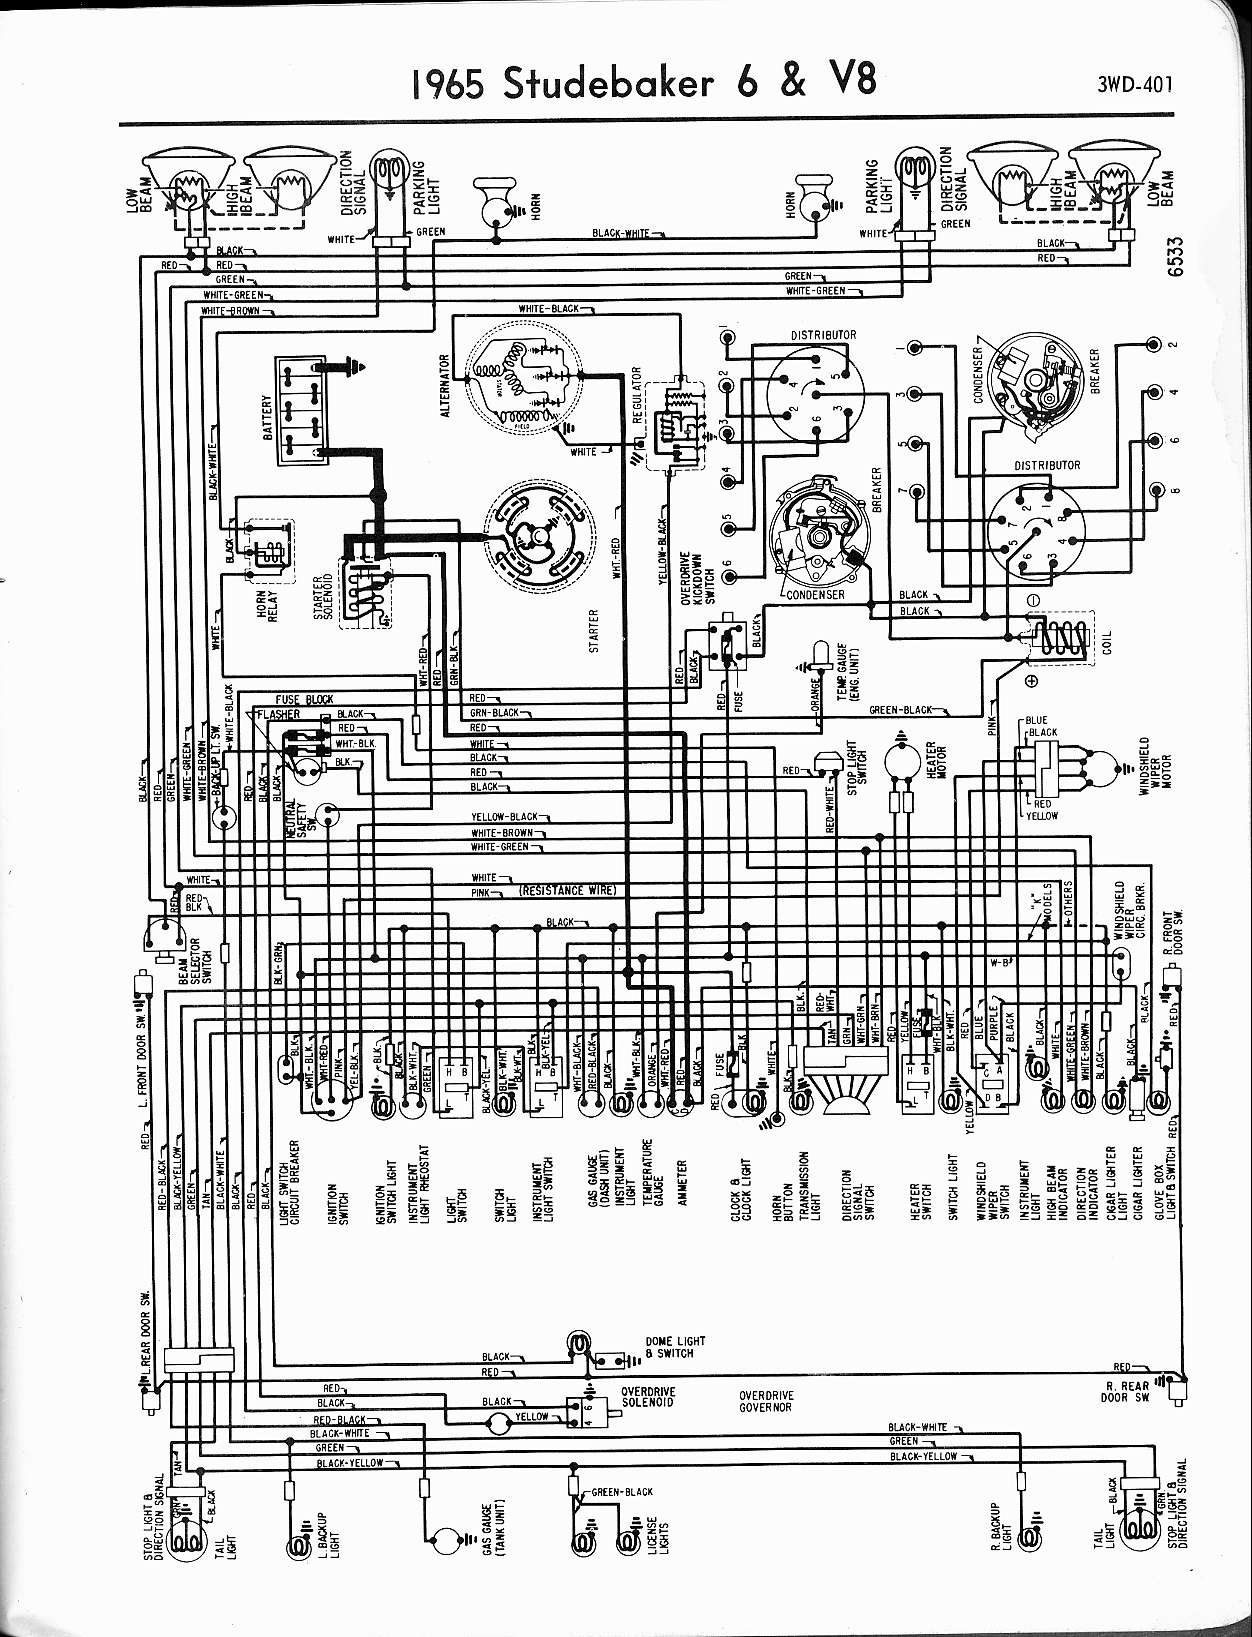 DIAGRAM] 51 Studebaker Wiring Diagram FULL Version HD Quality Wiring Diagram  - NANIMAQUINA.PFTC.FRpftc